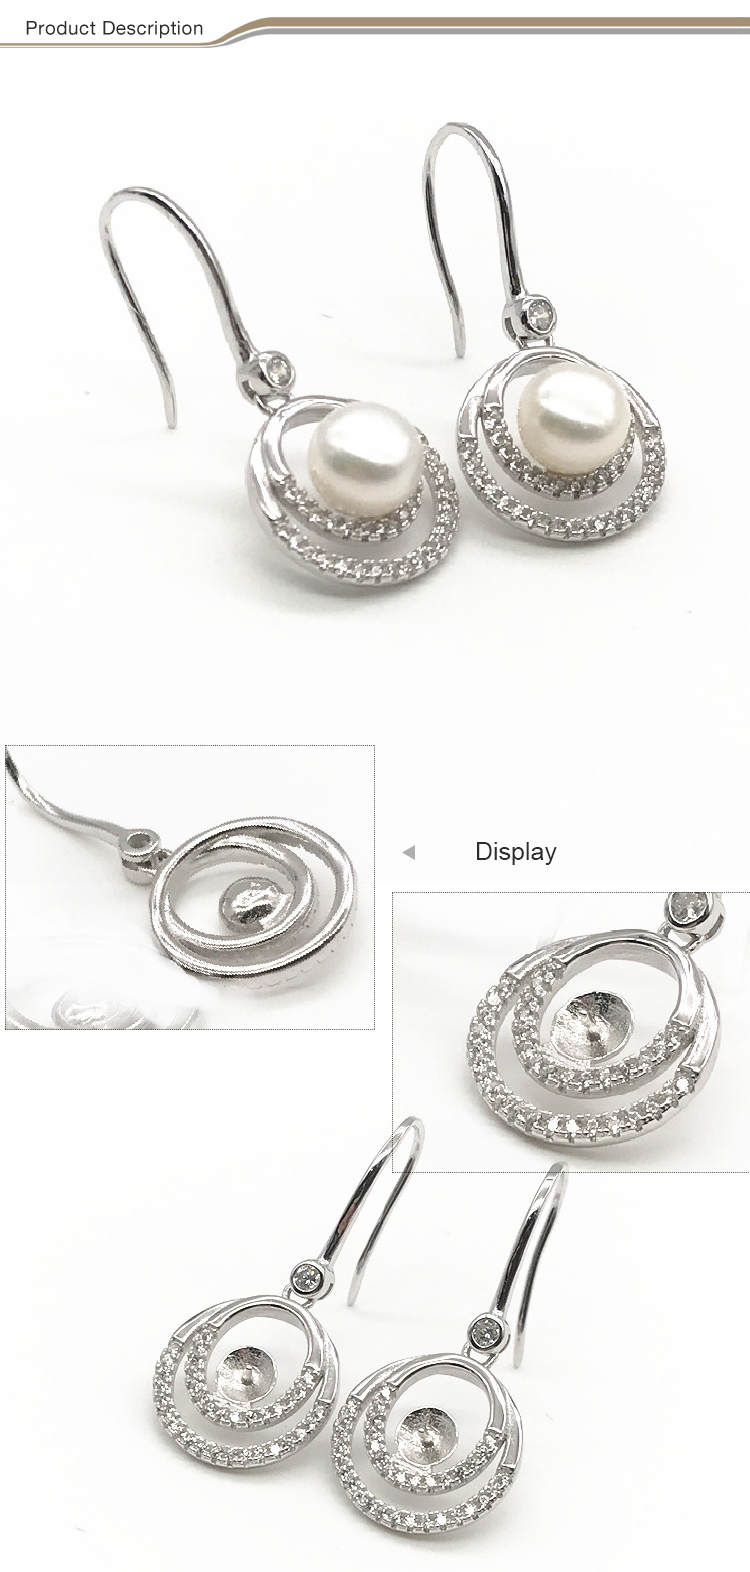 2019 wholesale fashionable 925 sterling silver pearl Earrings jewelry women fashion earring